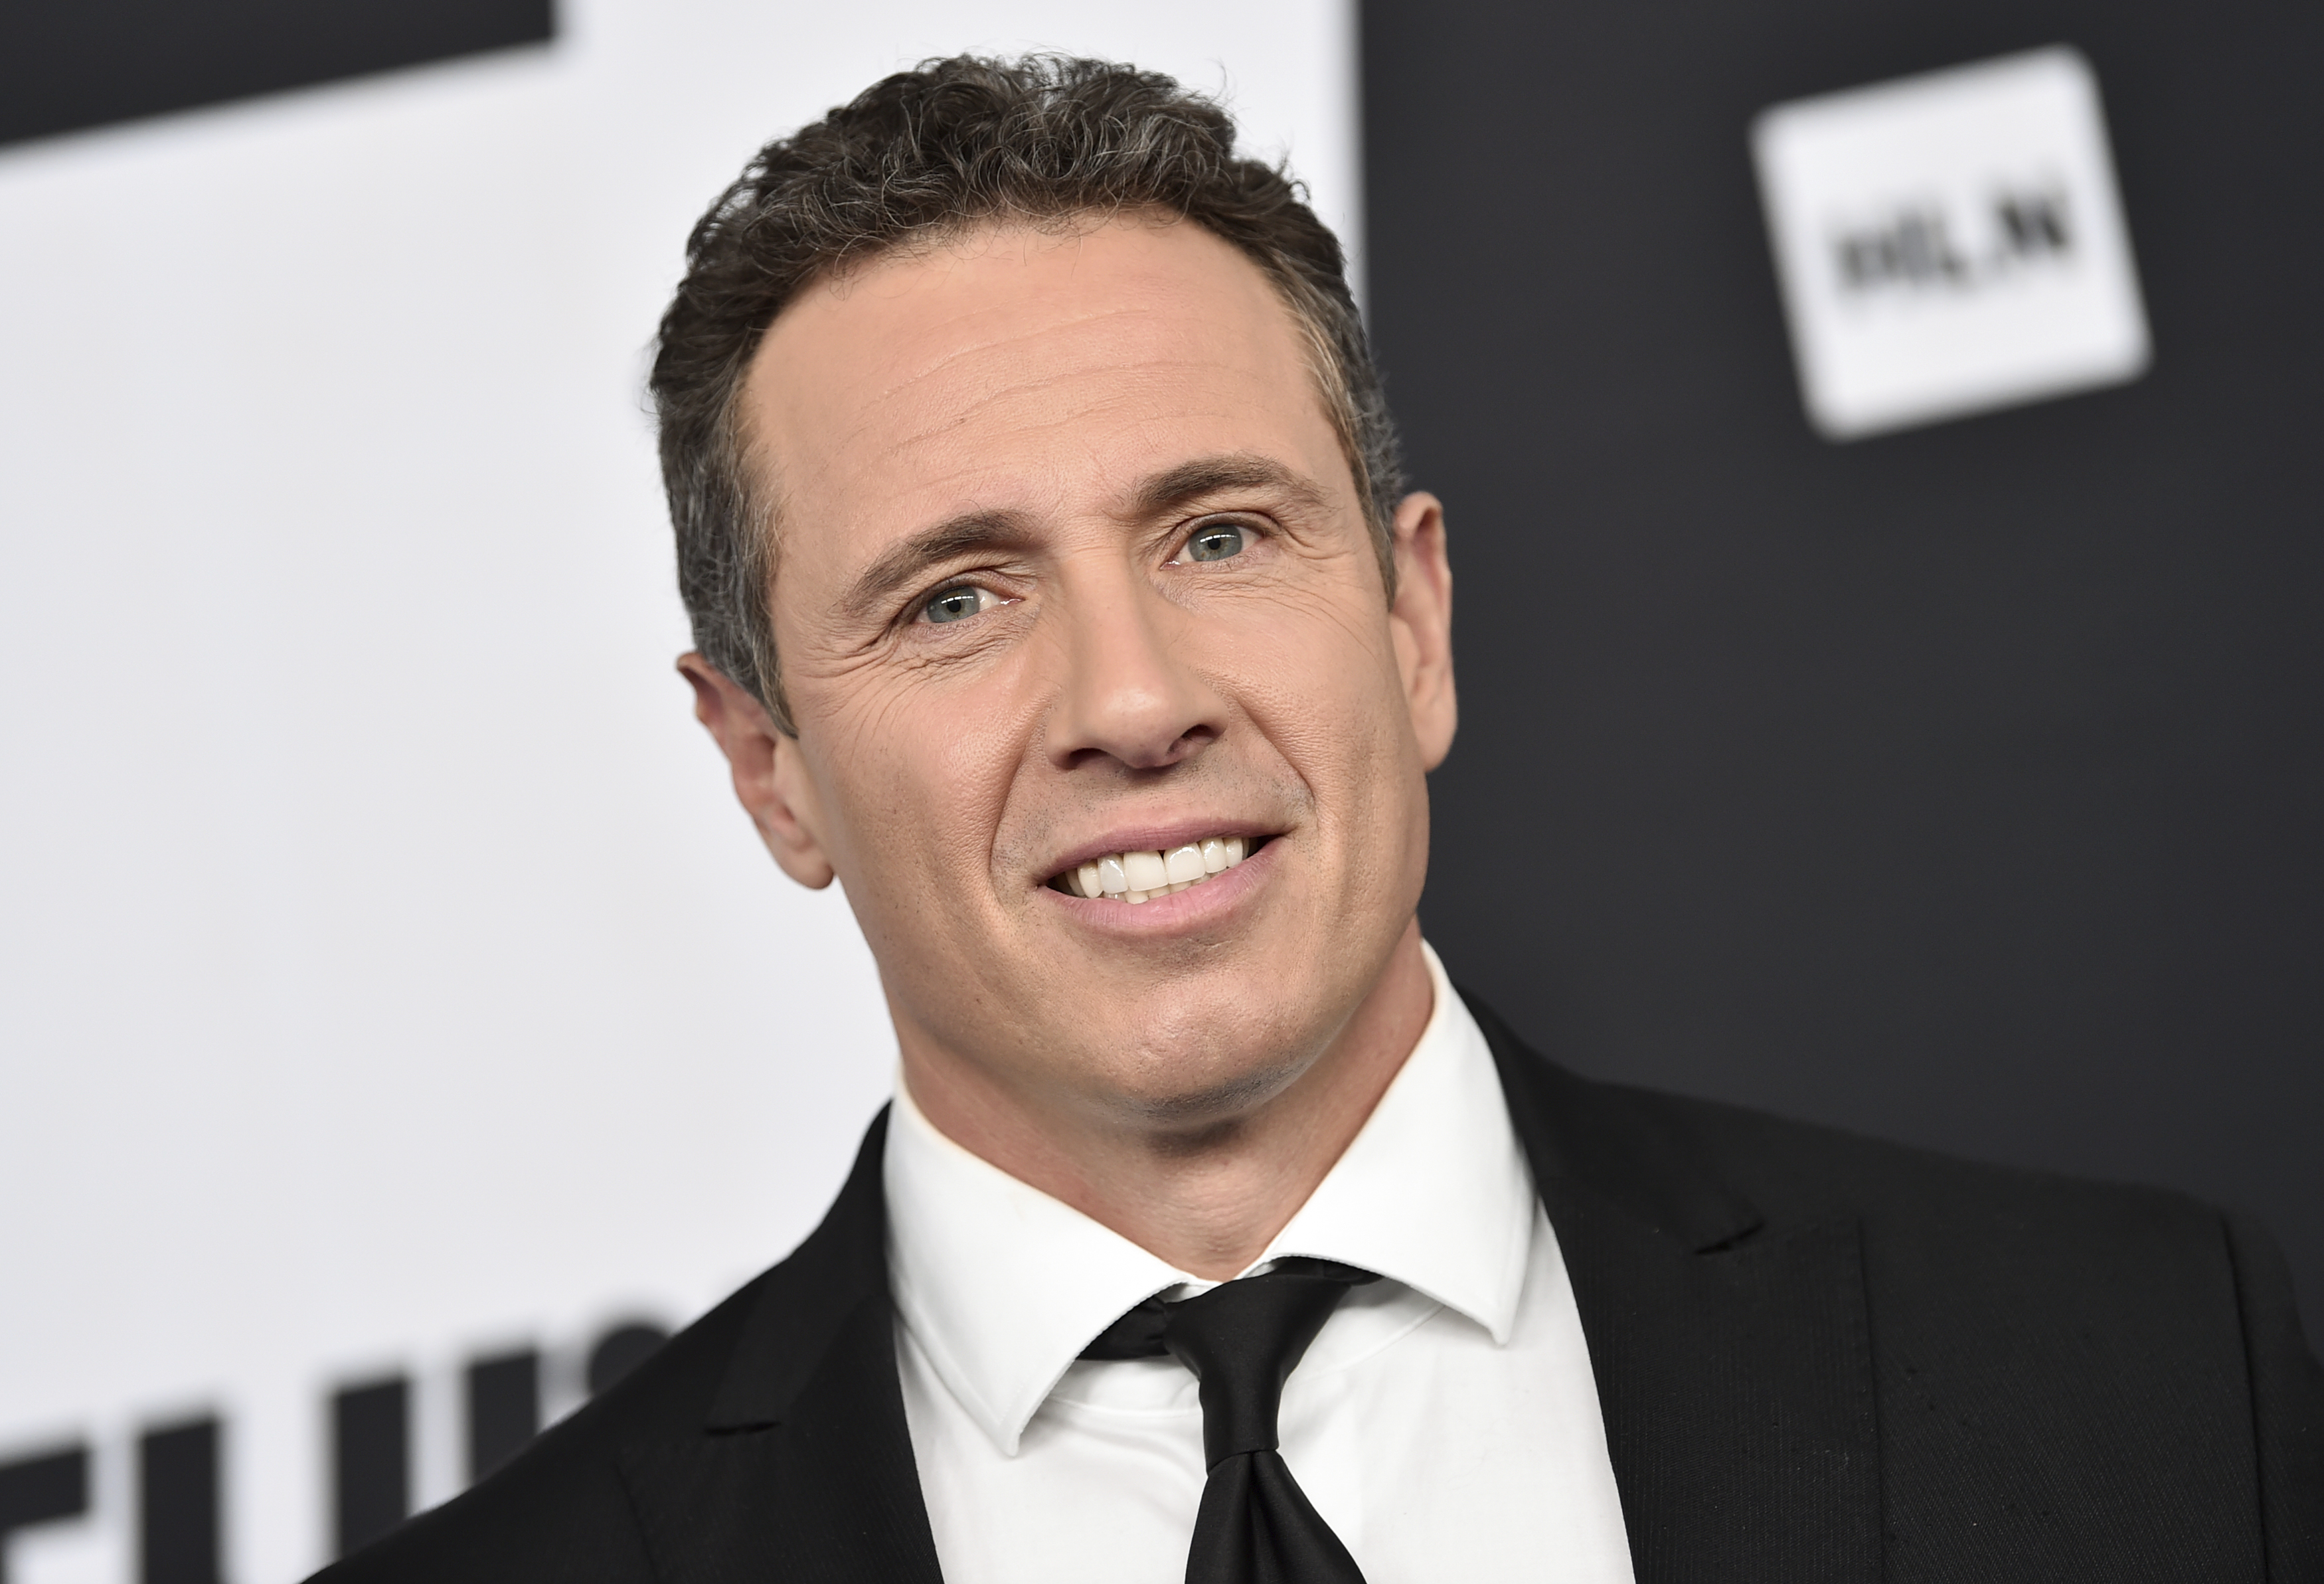 CNN's Chris Cuomo: Democrats still can't pack an arena like Trump